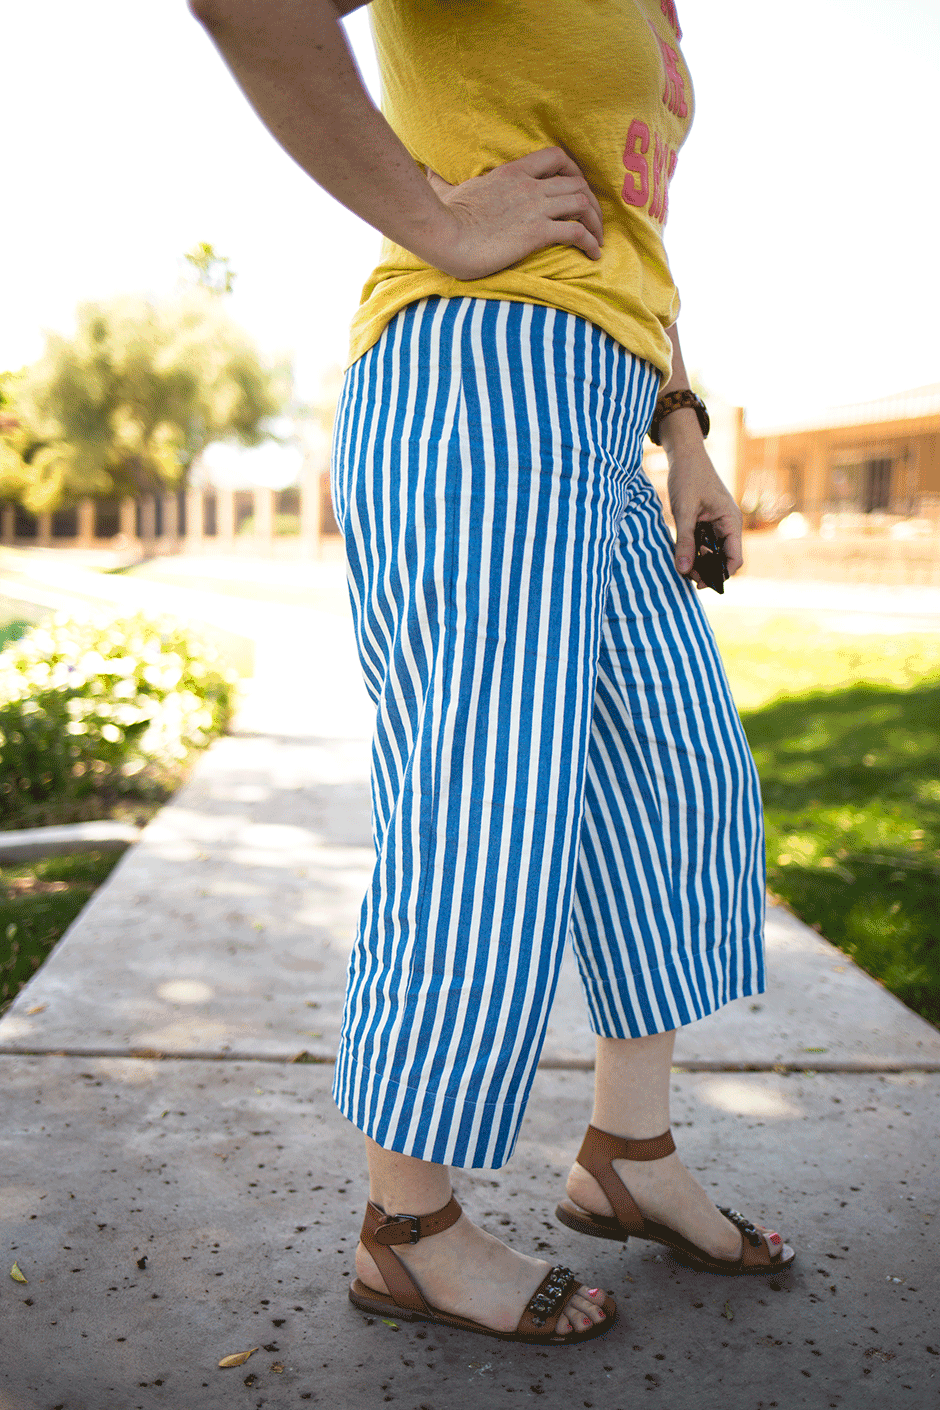 Warm weather is here and sewing cropped pants is the BEST way to keep yourself cool, covered and classy! If you're always looking for something that breathes, while also letting you comfortably chase and play with your kids, these are the bottoms you need. Finding a great fit and length can be tricky, however, which makes these the perfect DIY! Read on to get the pattern, fabric and construction details so you can also sew cropped pants!